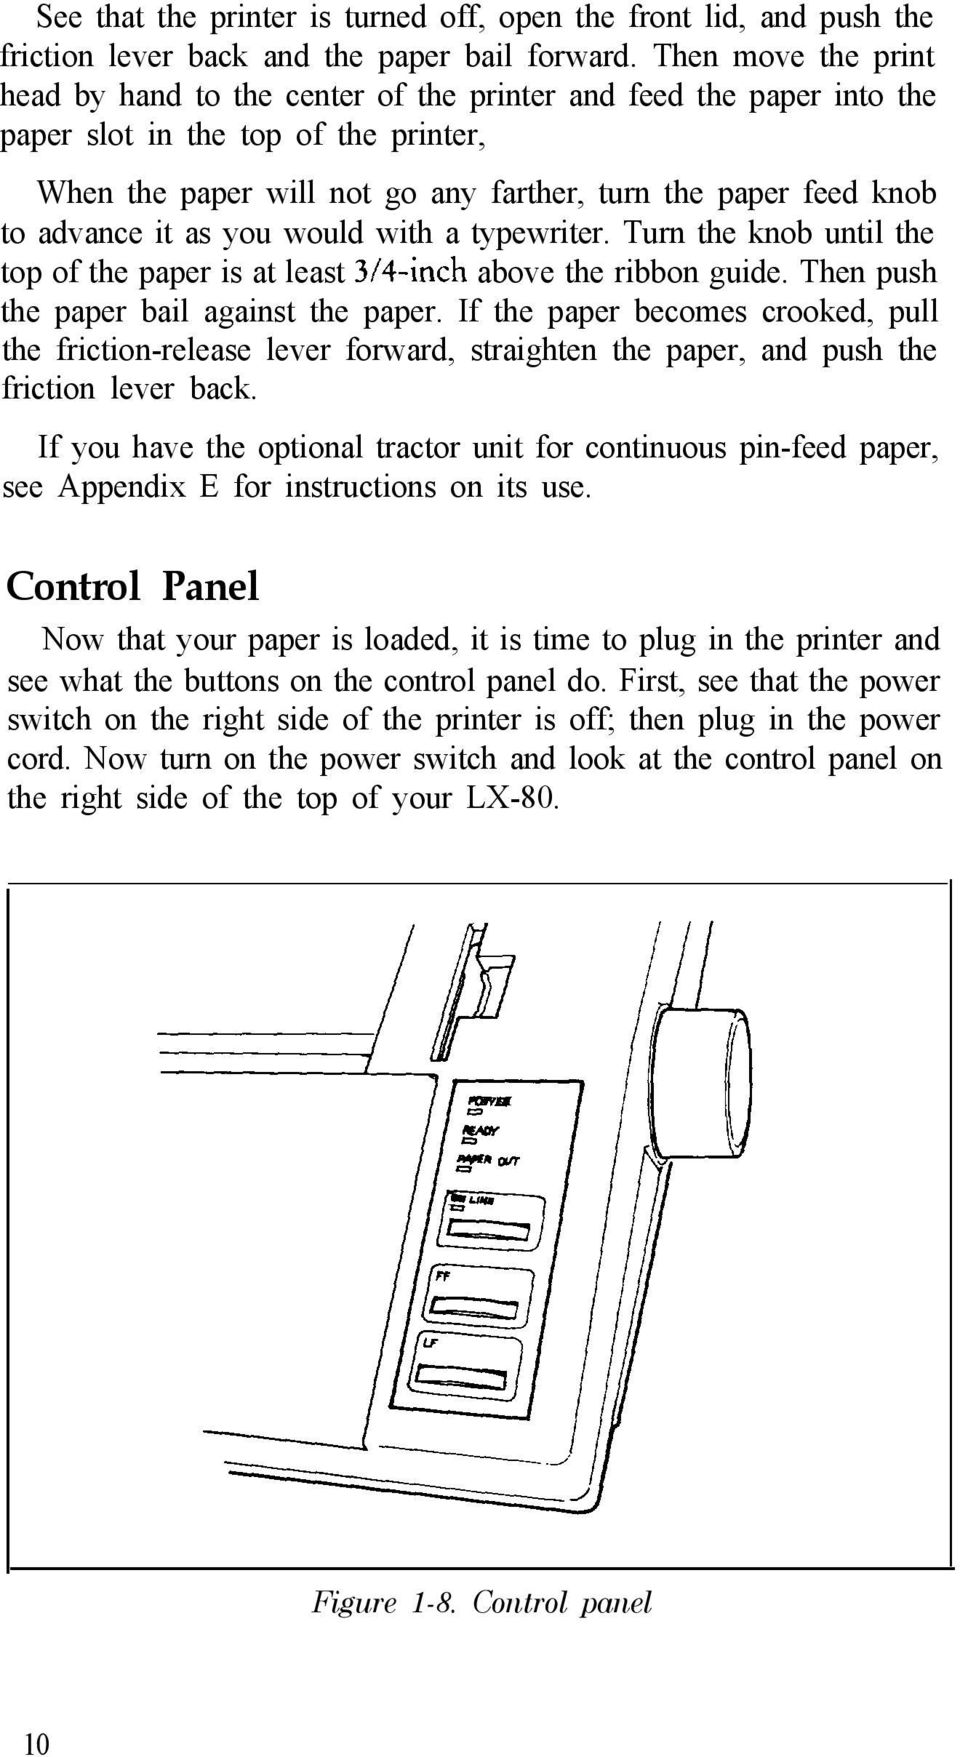 advance it as you would with a typewriter. Turn the knob until the top of the paper is at least 3/+inch above the ribbon guide. Then push the paper bail against the paper.